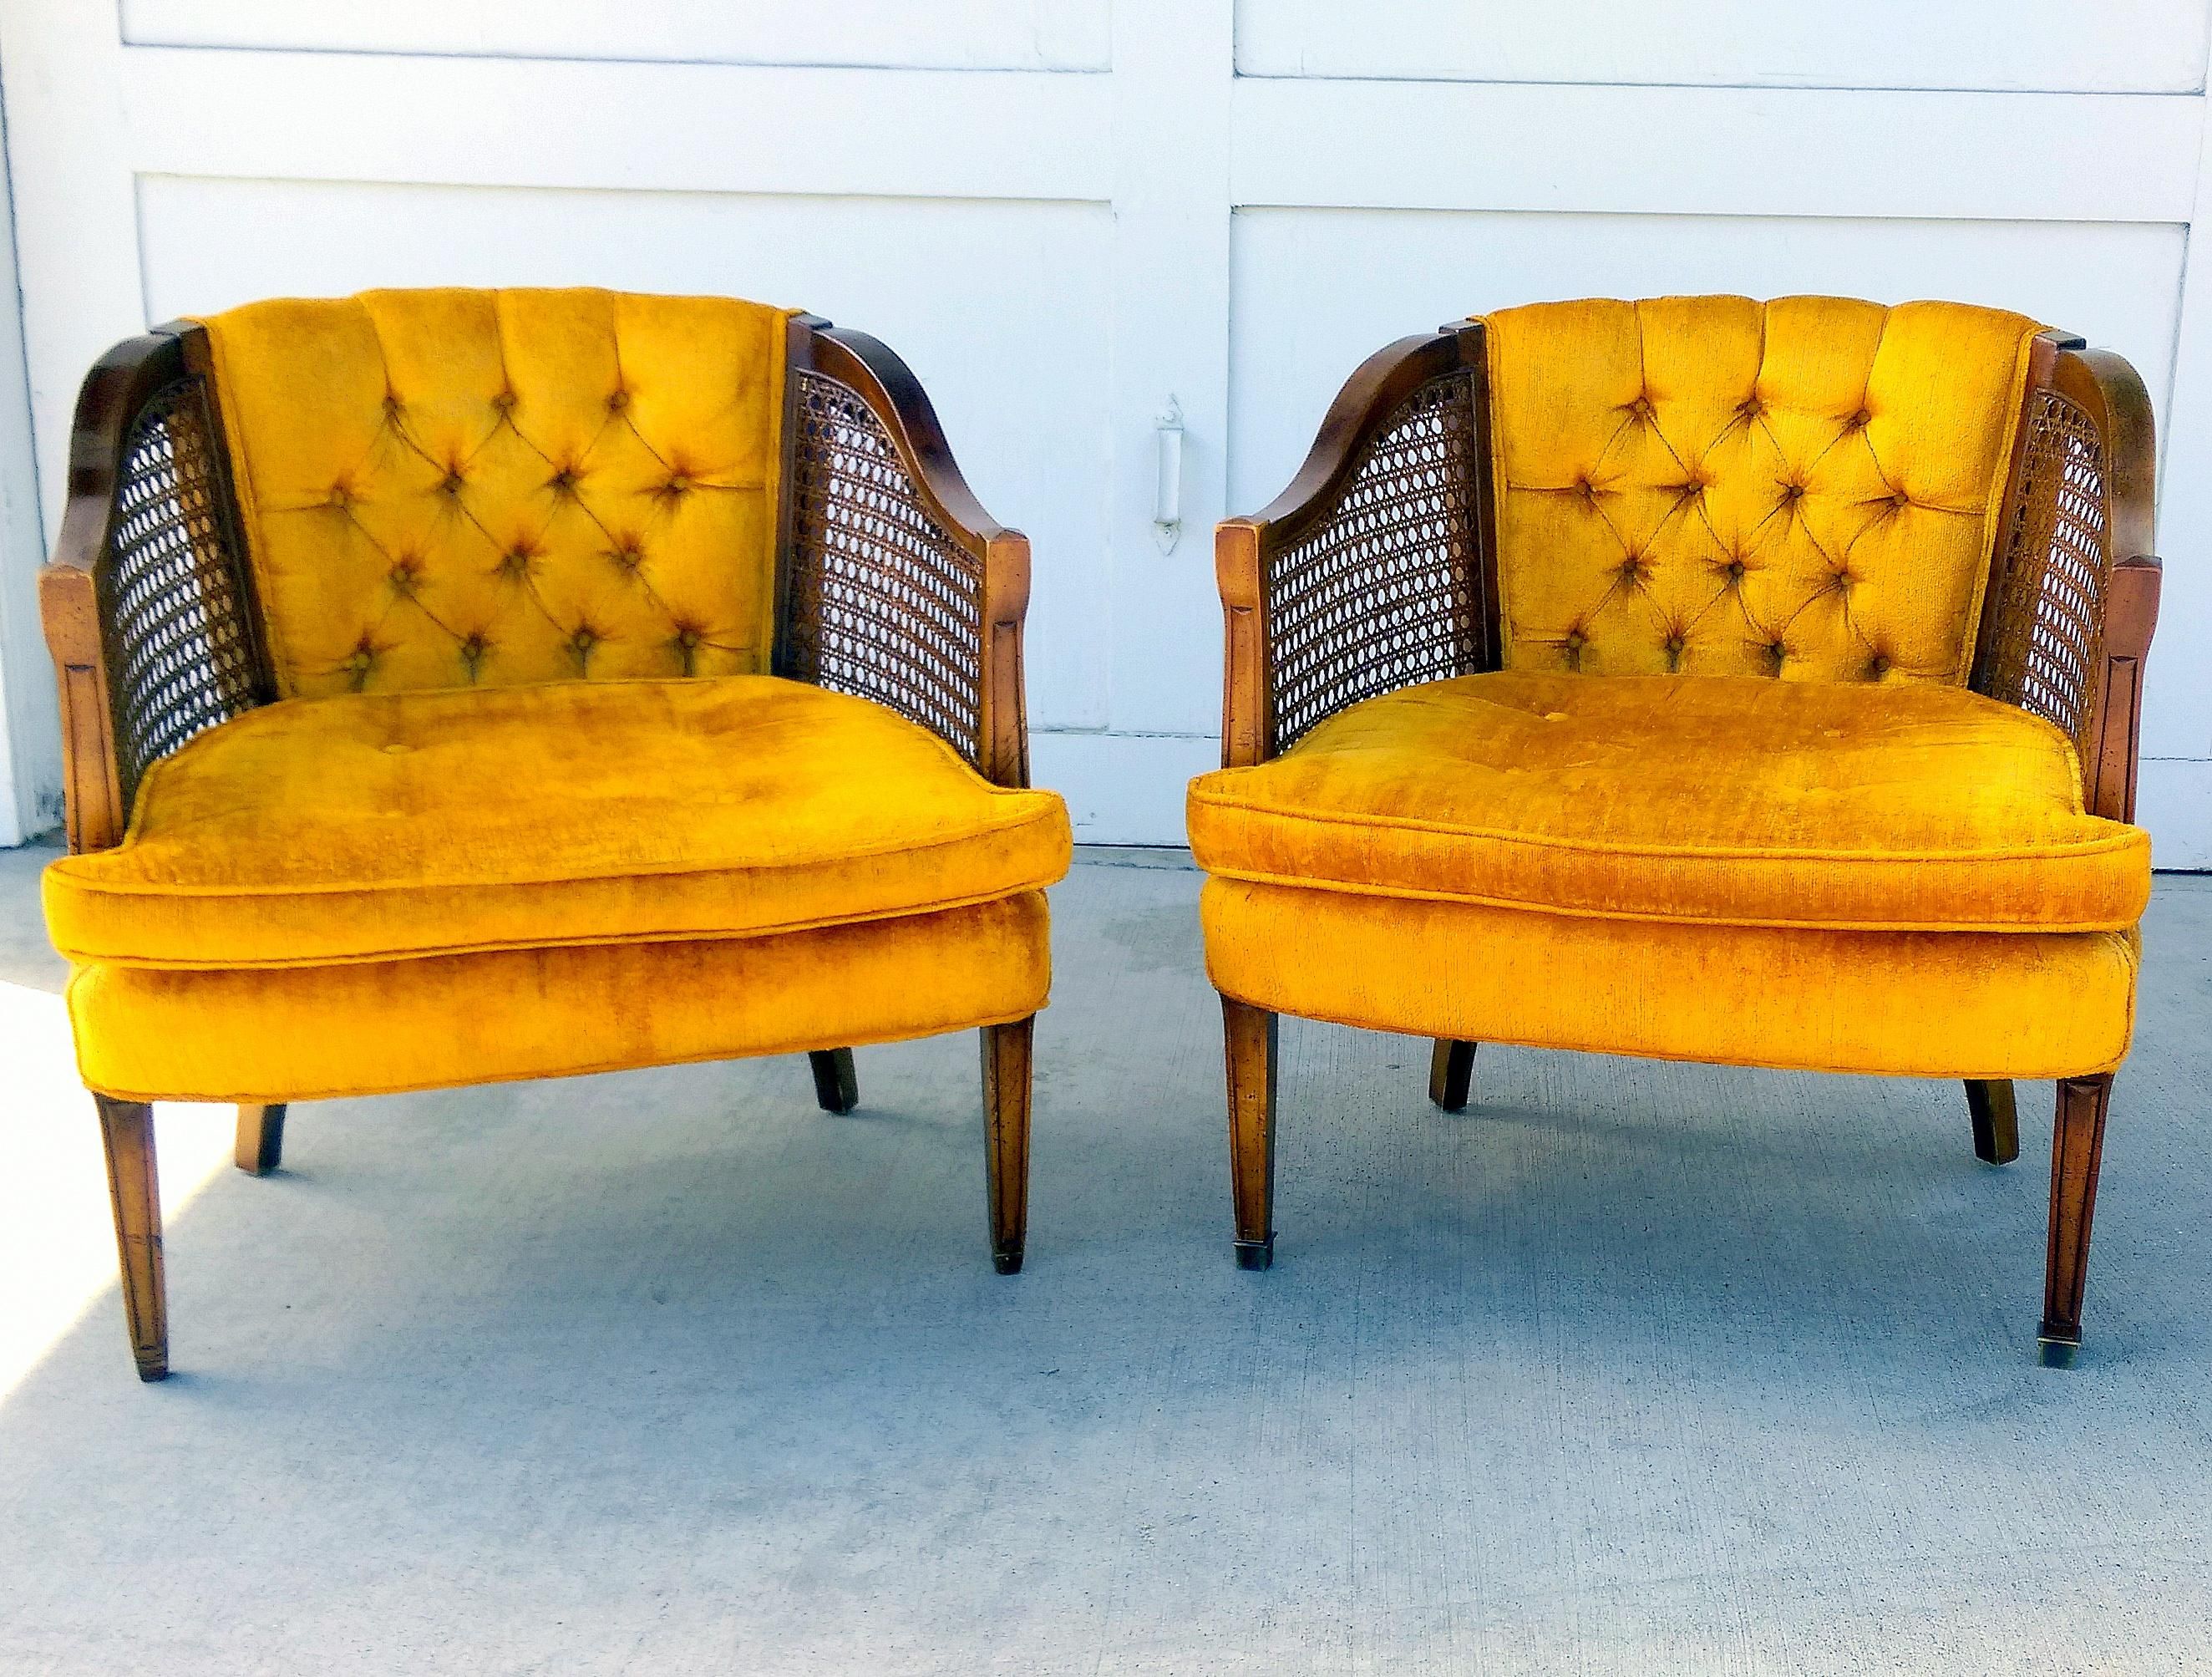 Vintage Gold Sam Moore Cane Barrel Chairs   Pair   Image 4 Of 11